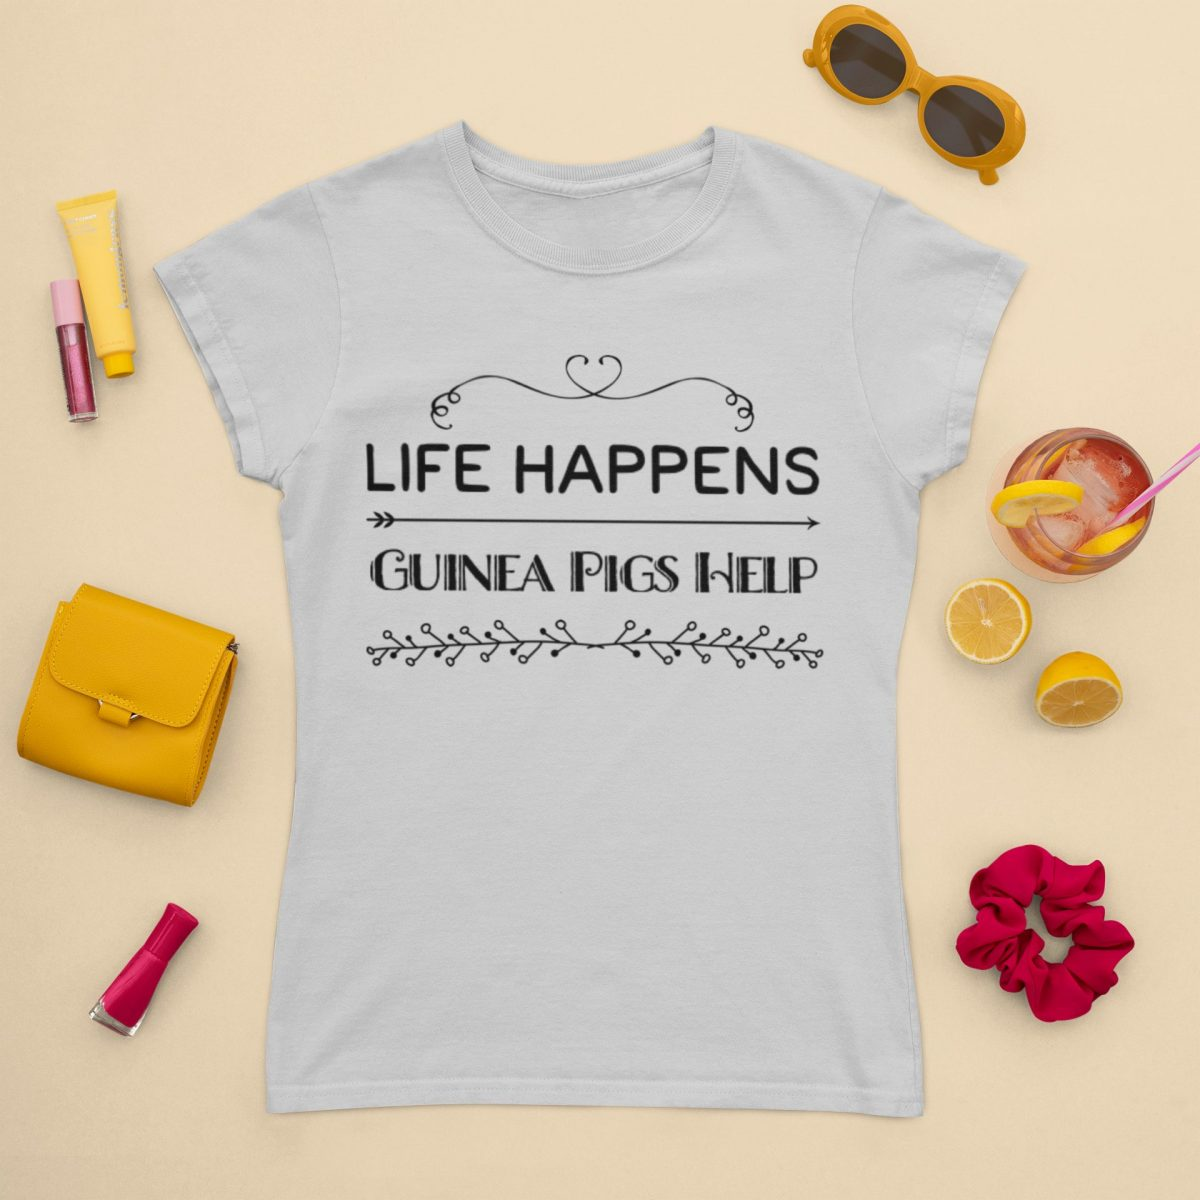 t-shirt-mockup-featuring-a-summer-drink-and-girly-accessories-m1671